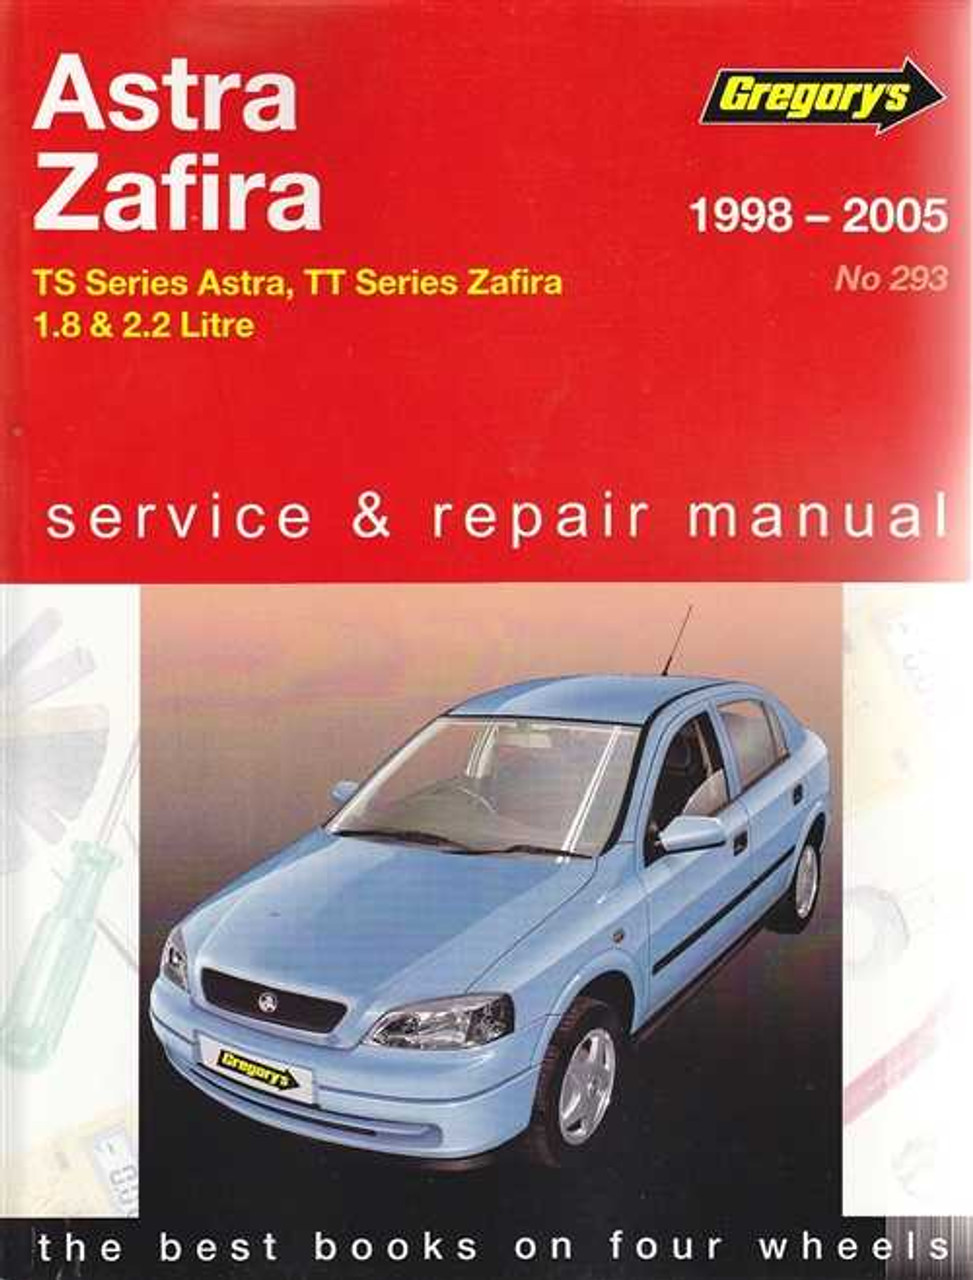 opel astra ts service manual how to and user guide instructions u2022 rh taxibermuda co opel astra g 2002 manual opel astra g 2002 manual